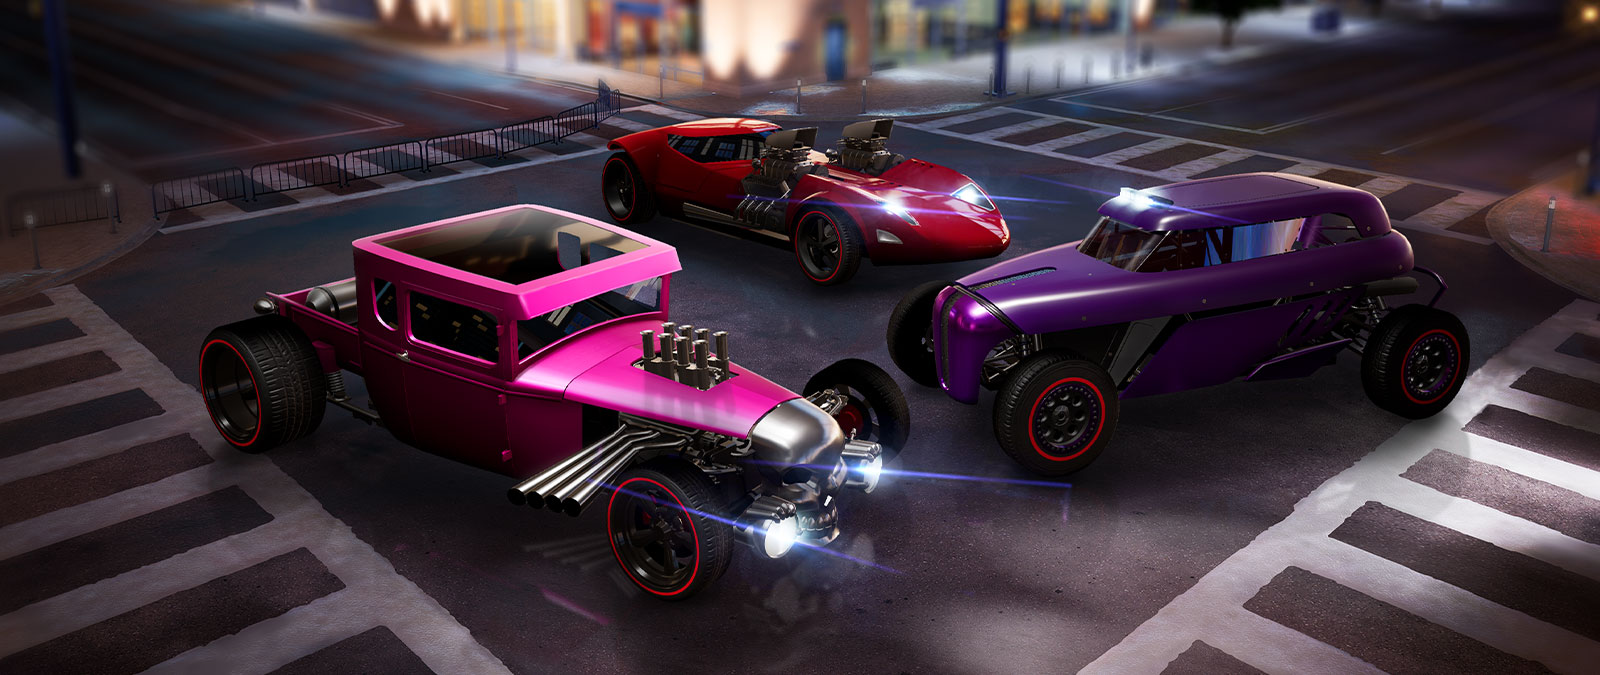 Three Hot Wheels cars in the middle of a junction